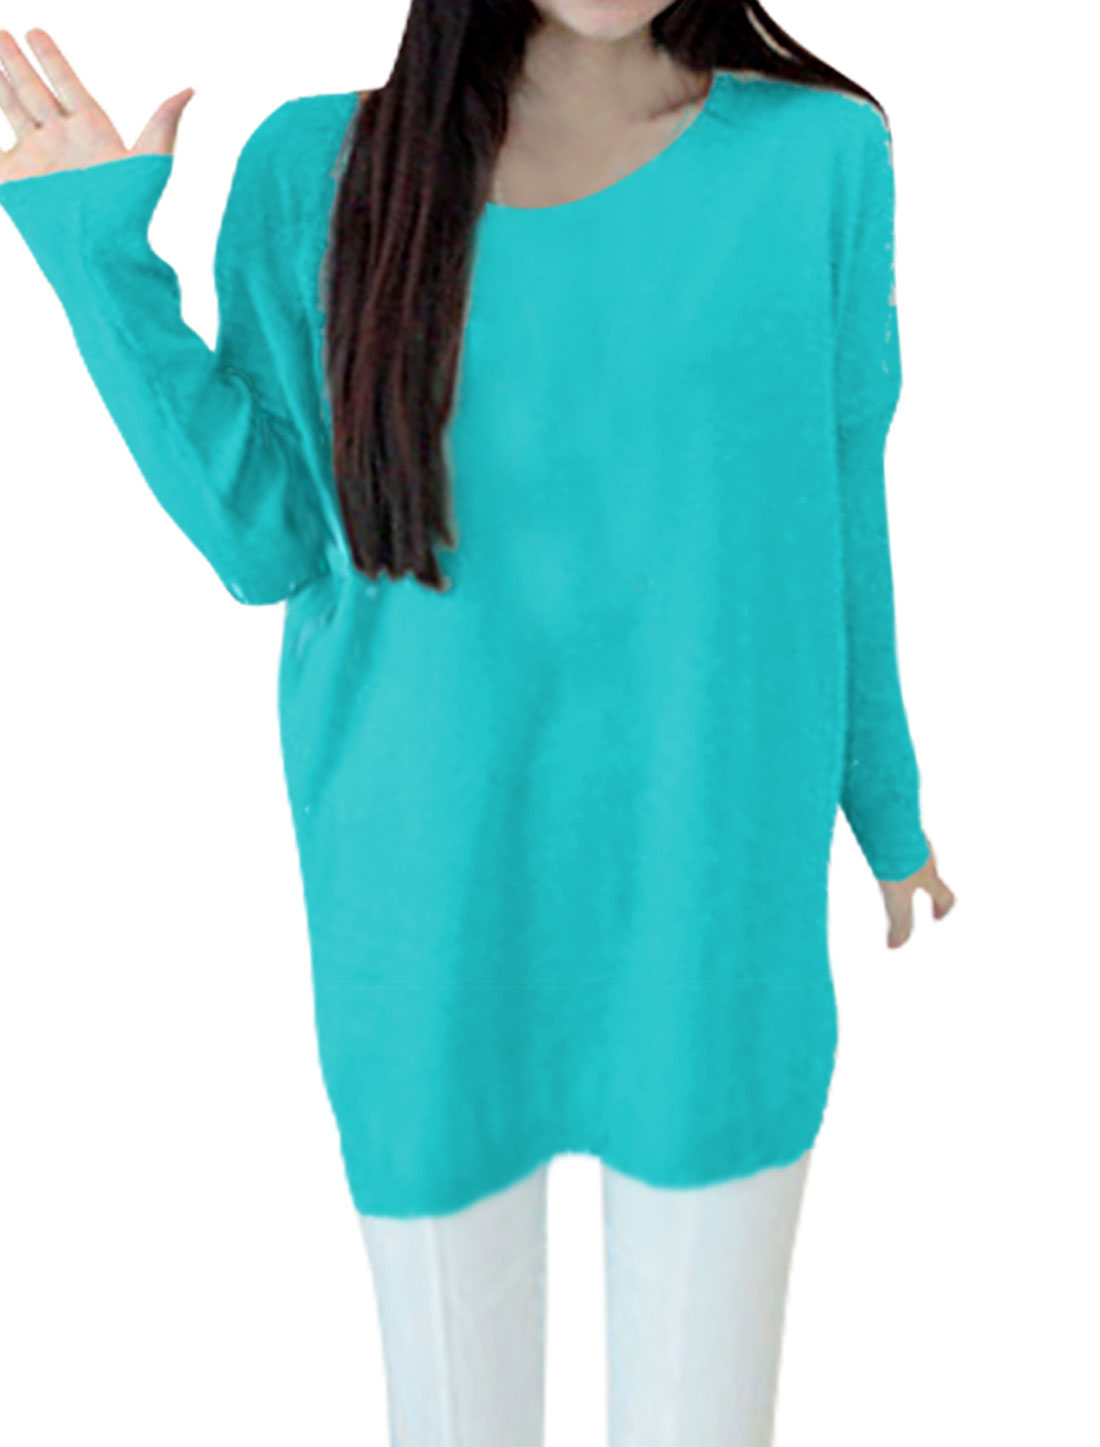 Lady Scoop Neck Batwing Sleeved Loose Aqua Knit Tunic Shirt XS